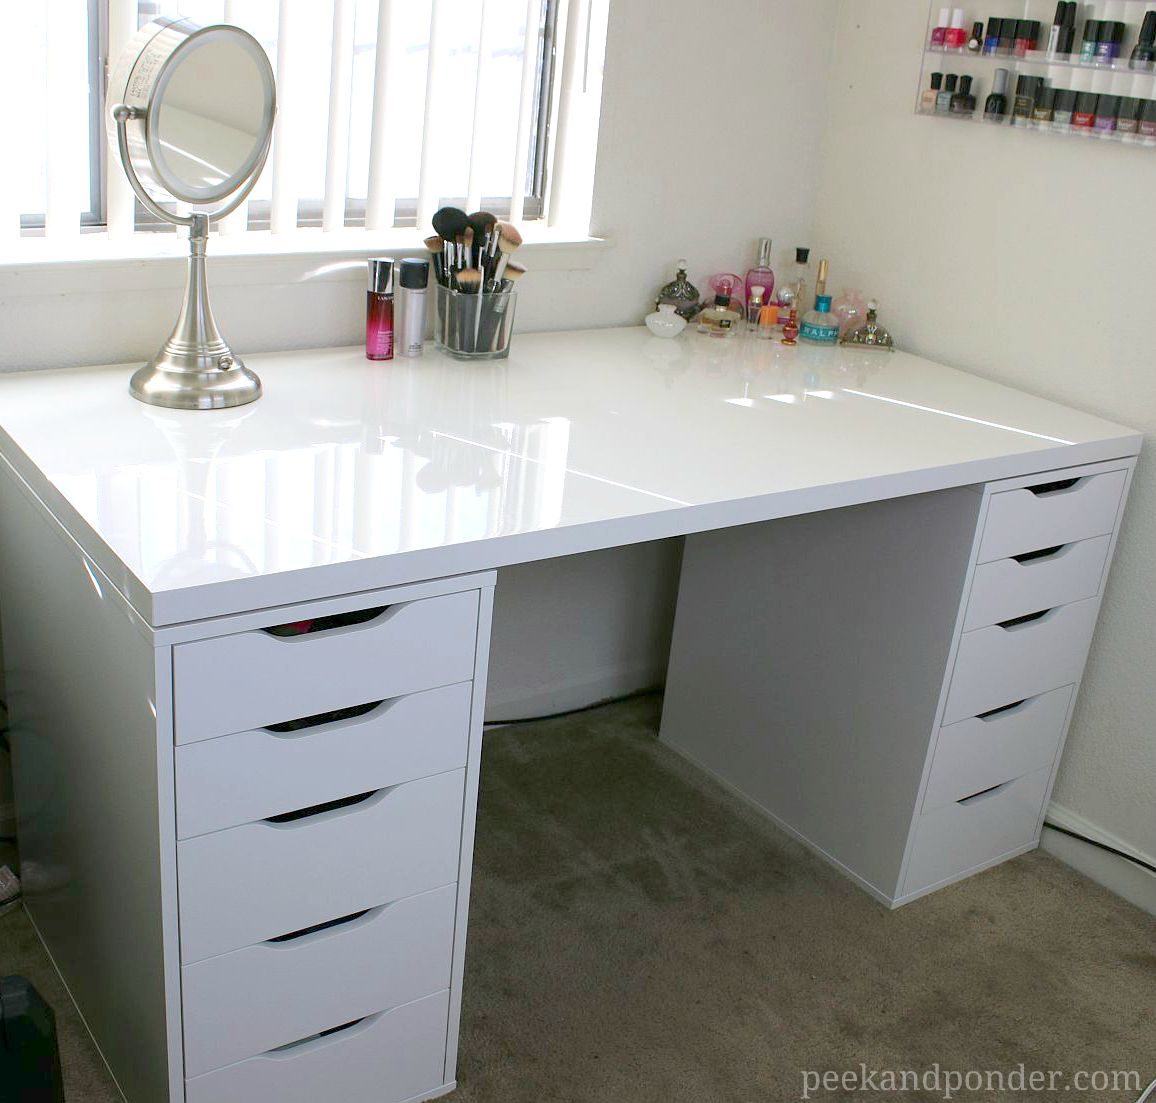 Video Makeup Vanity And Storage Peek Ponder Ikea Makeup Storage Ikea Drawers Diy Makeup Storage